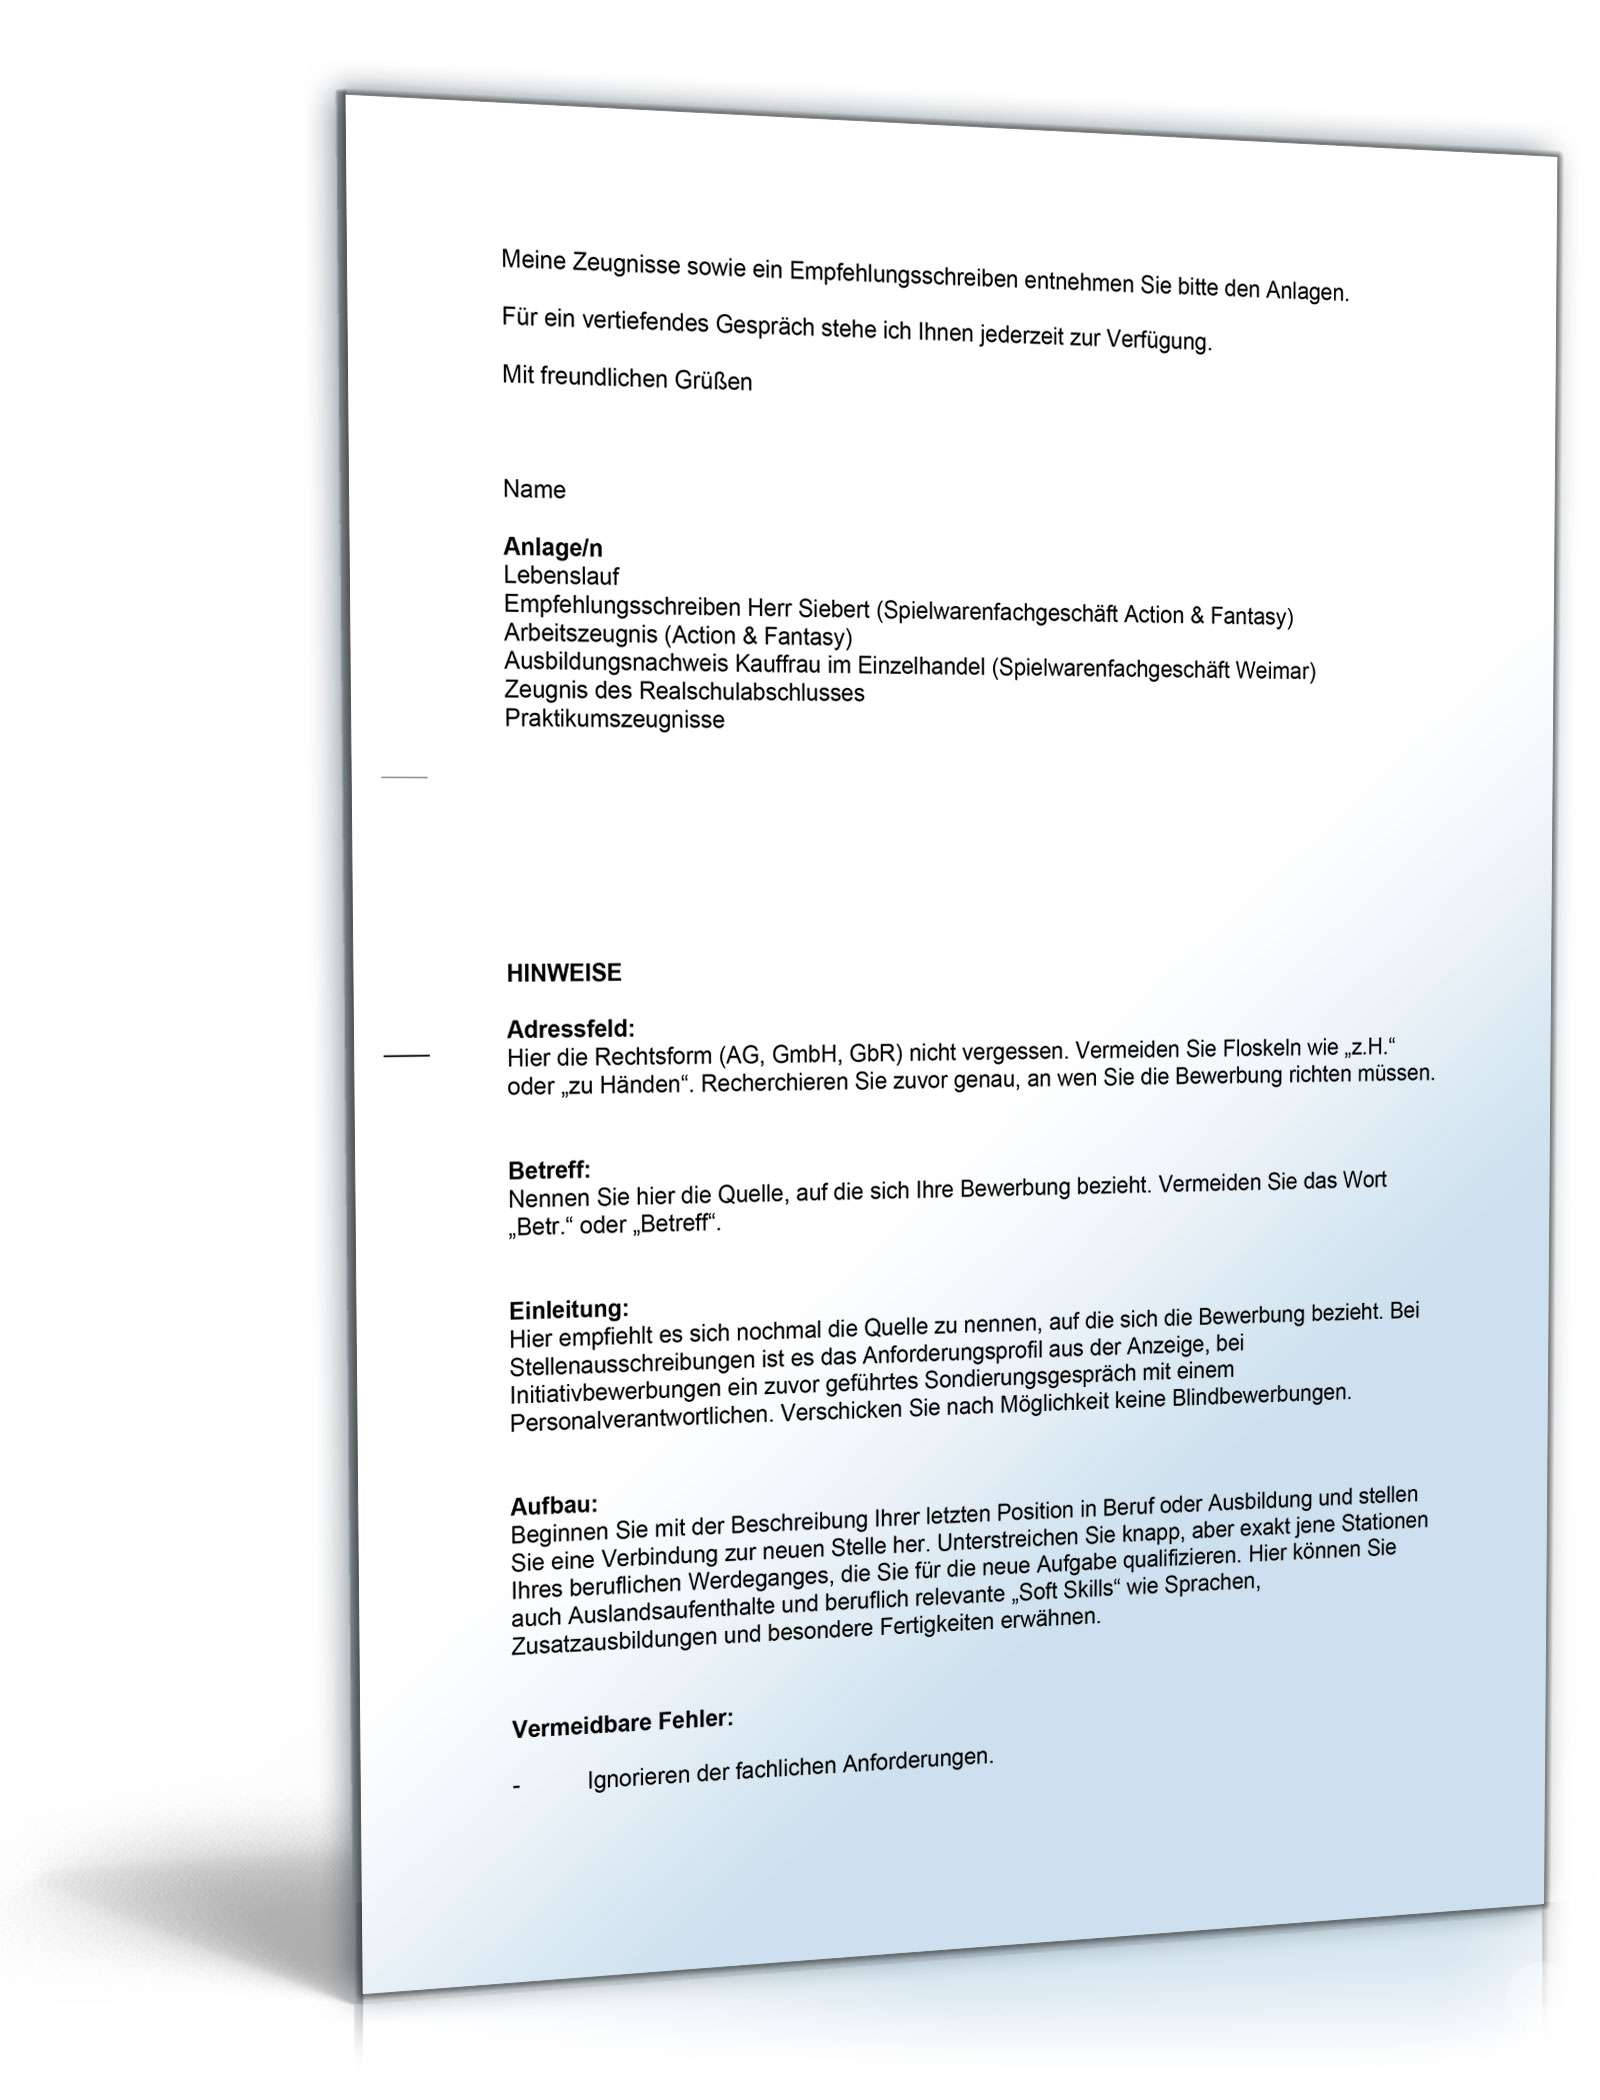 Fein Einzelhandel Lebenslauf Vorlage Doc Fotos - Entry Level Resume ...